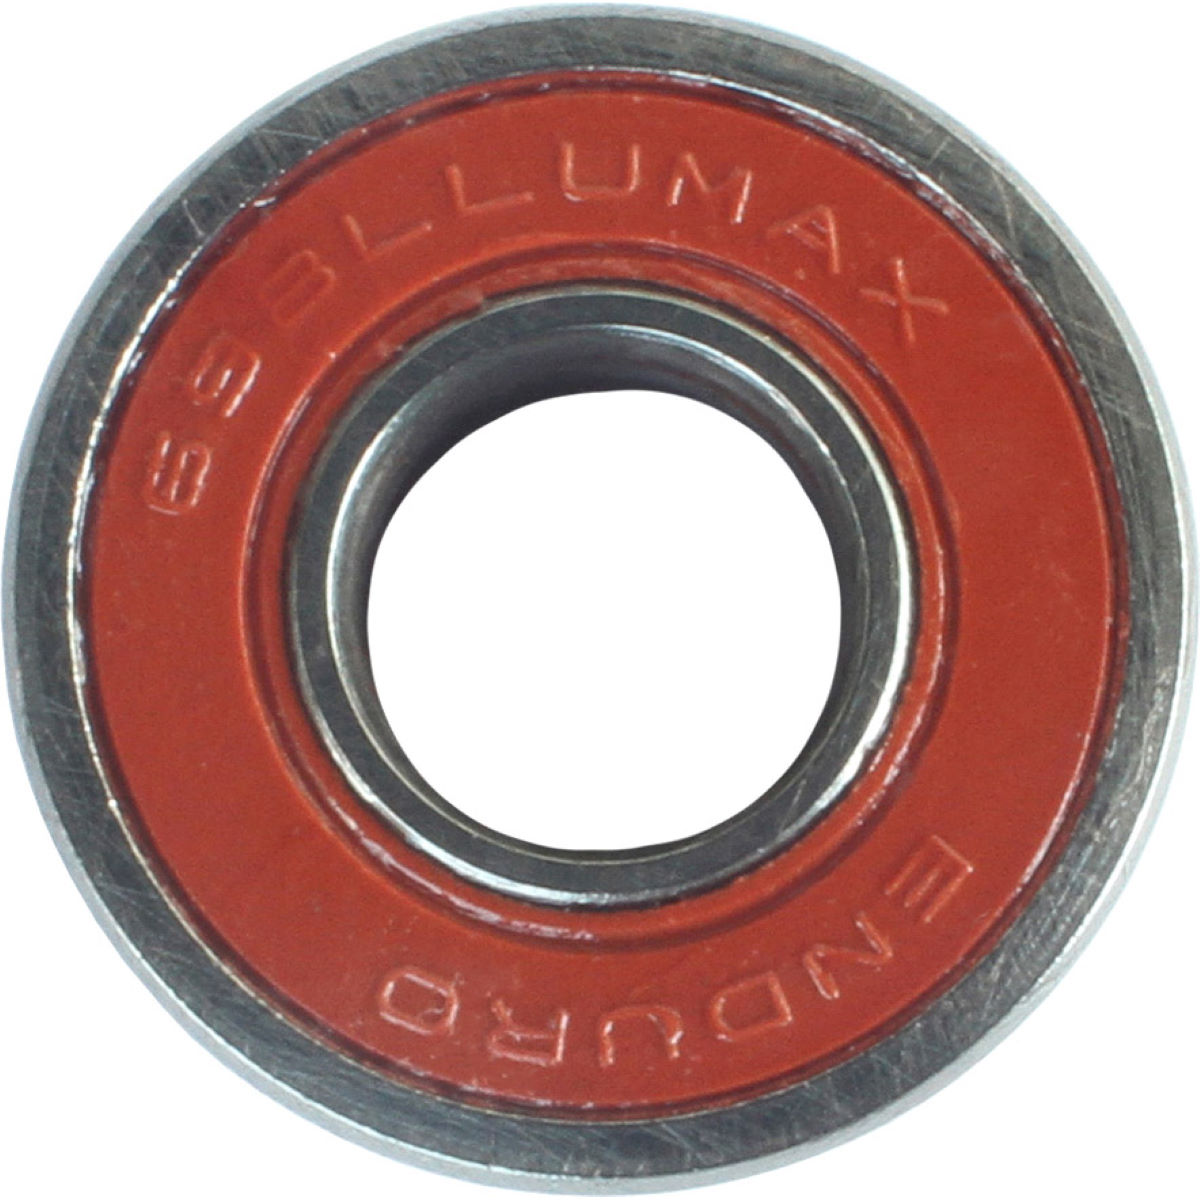 Enduro Bearings Enduro Bearings ENDURO B